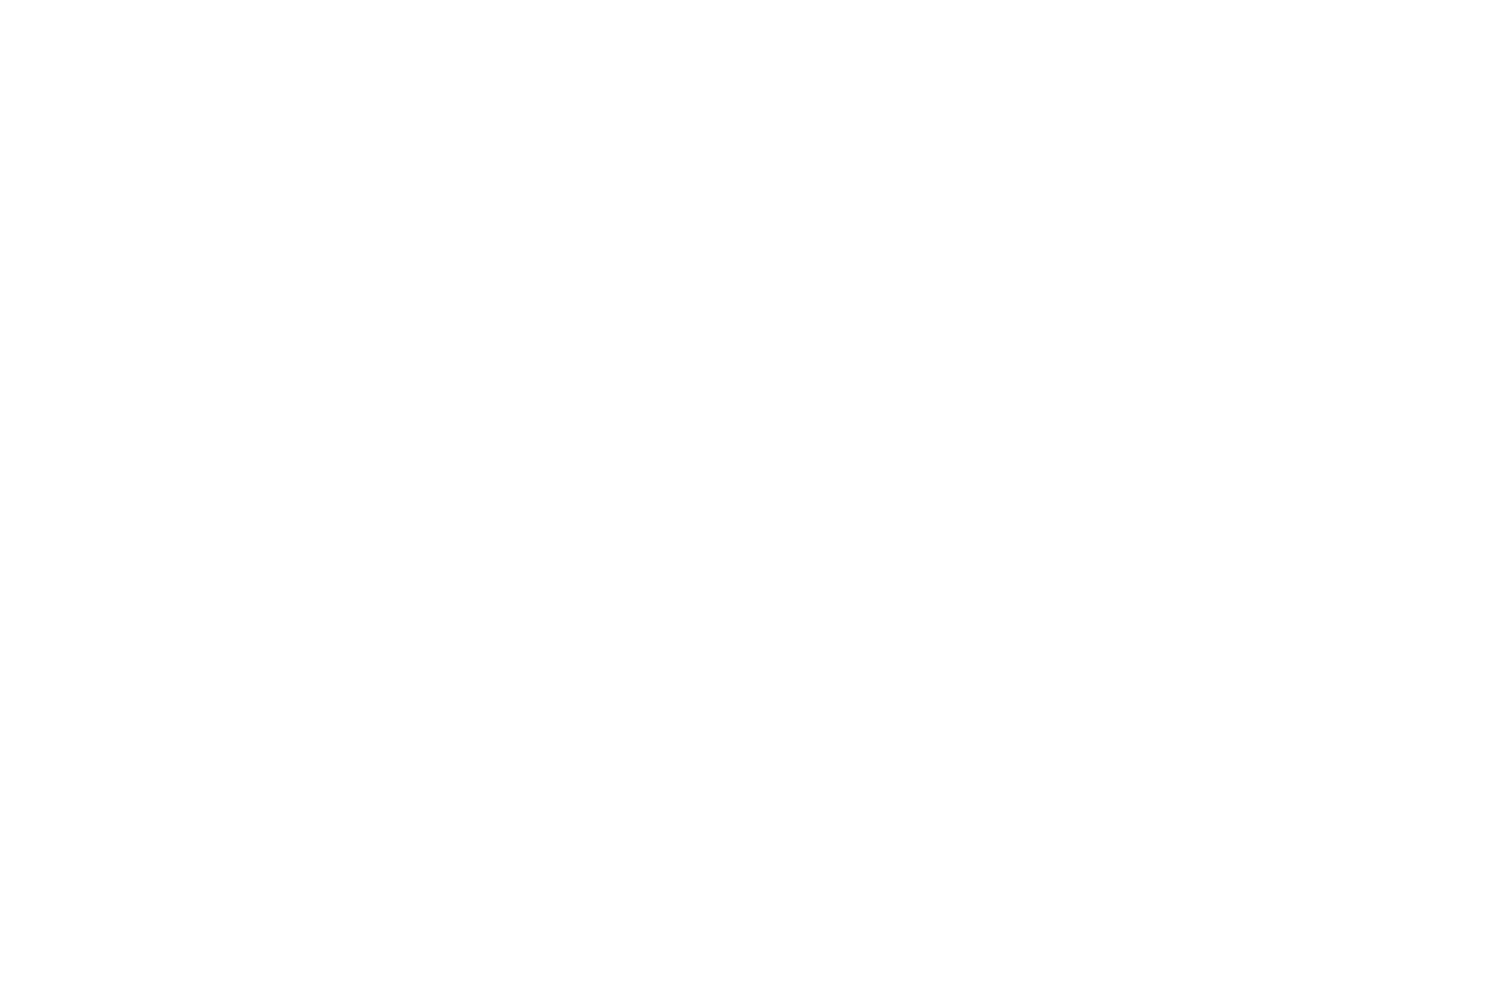 The Law Offices of Suraj A. Vyas, LLC